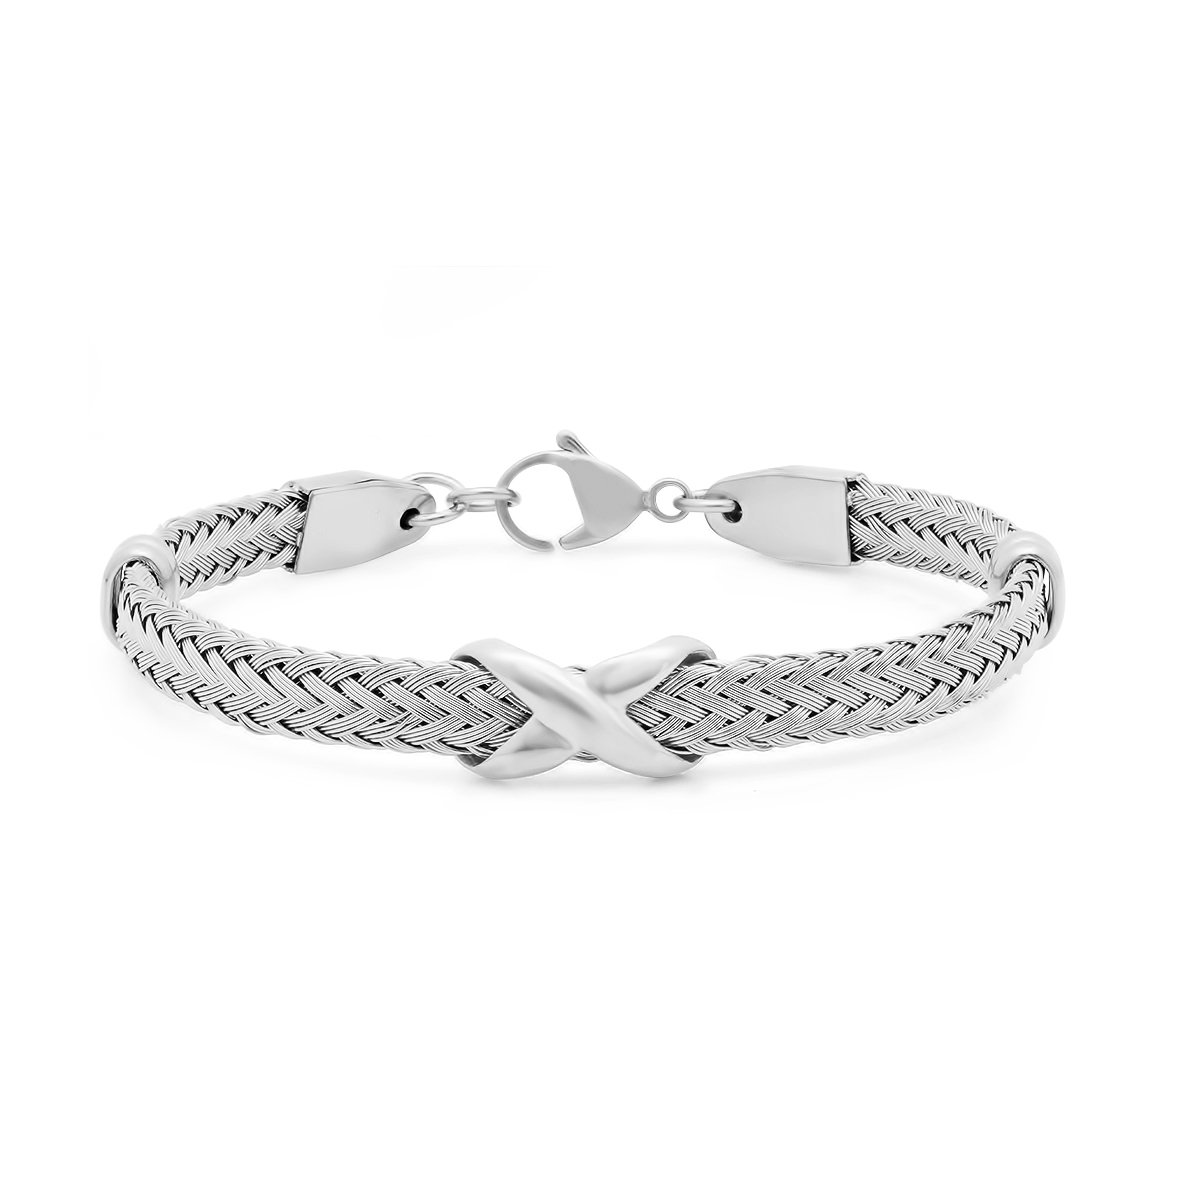 Stainless steel cable wire infinity charm bracelet